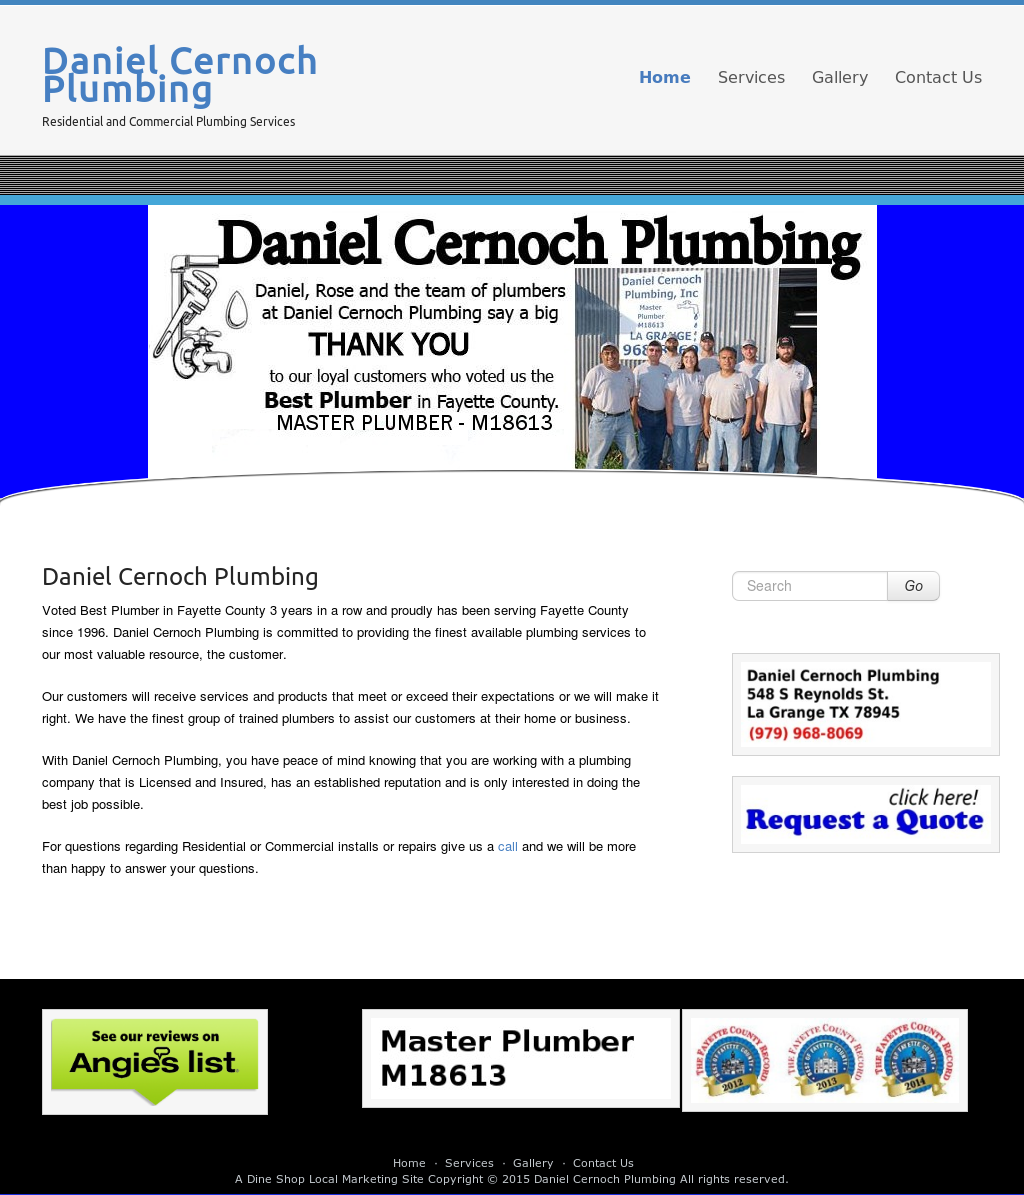 Daniel Cernoch Plumbing Competitors, Revenue and Employees - Owler